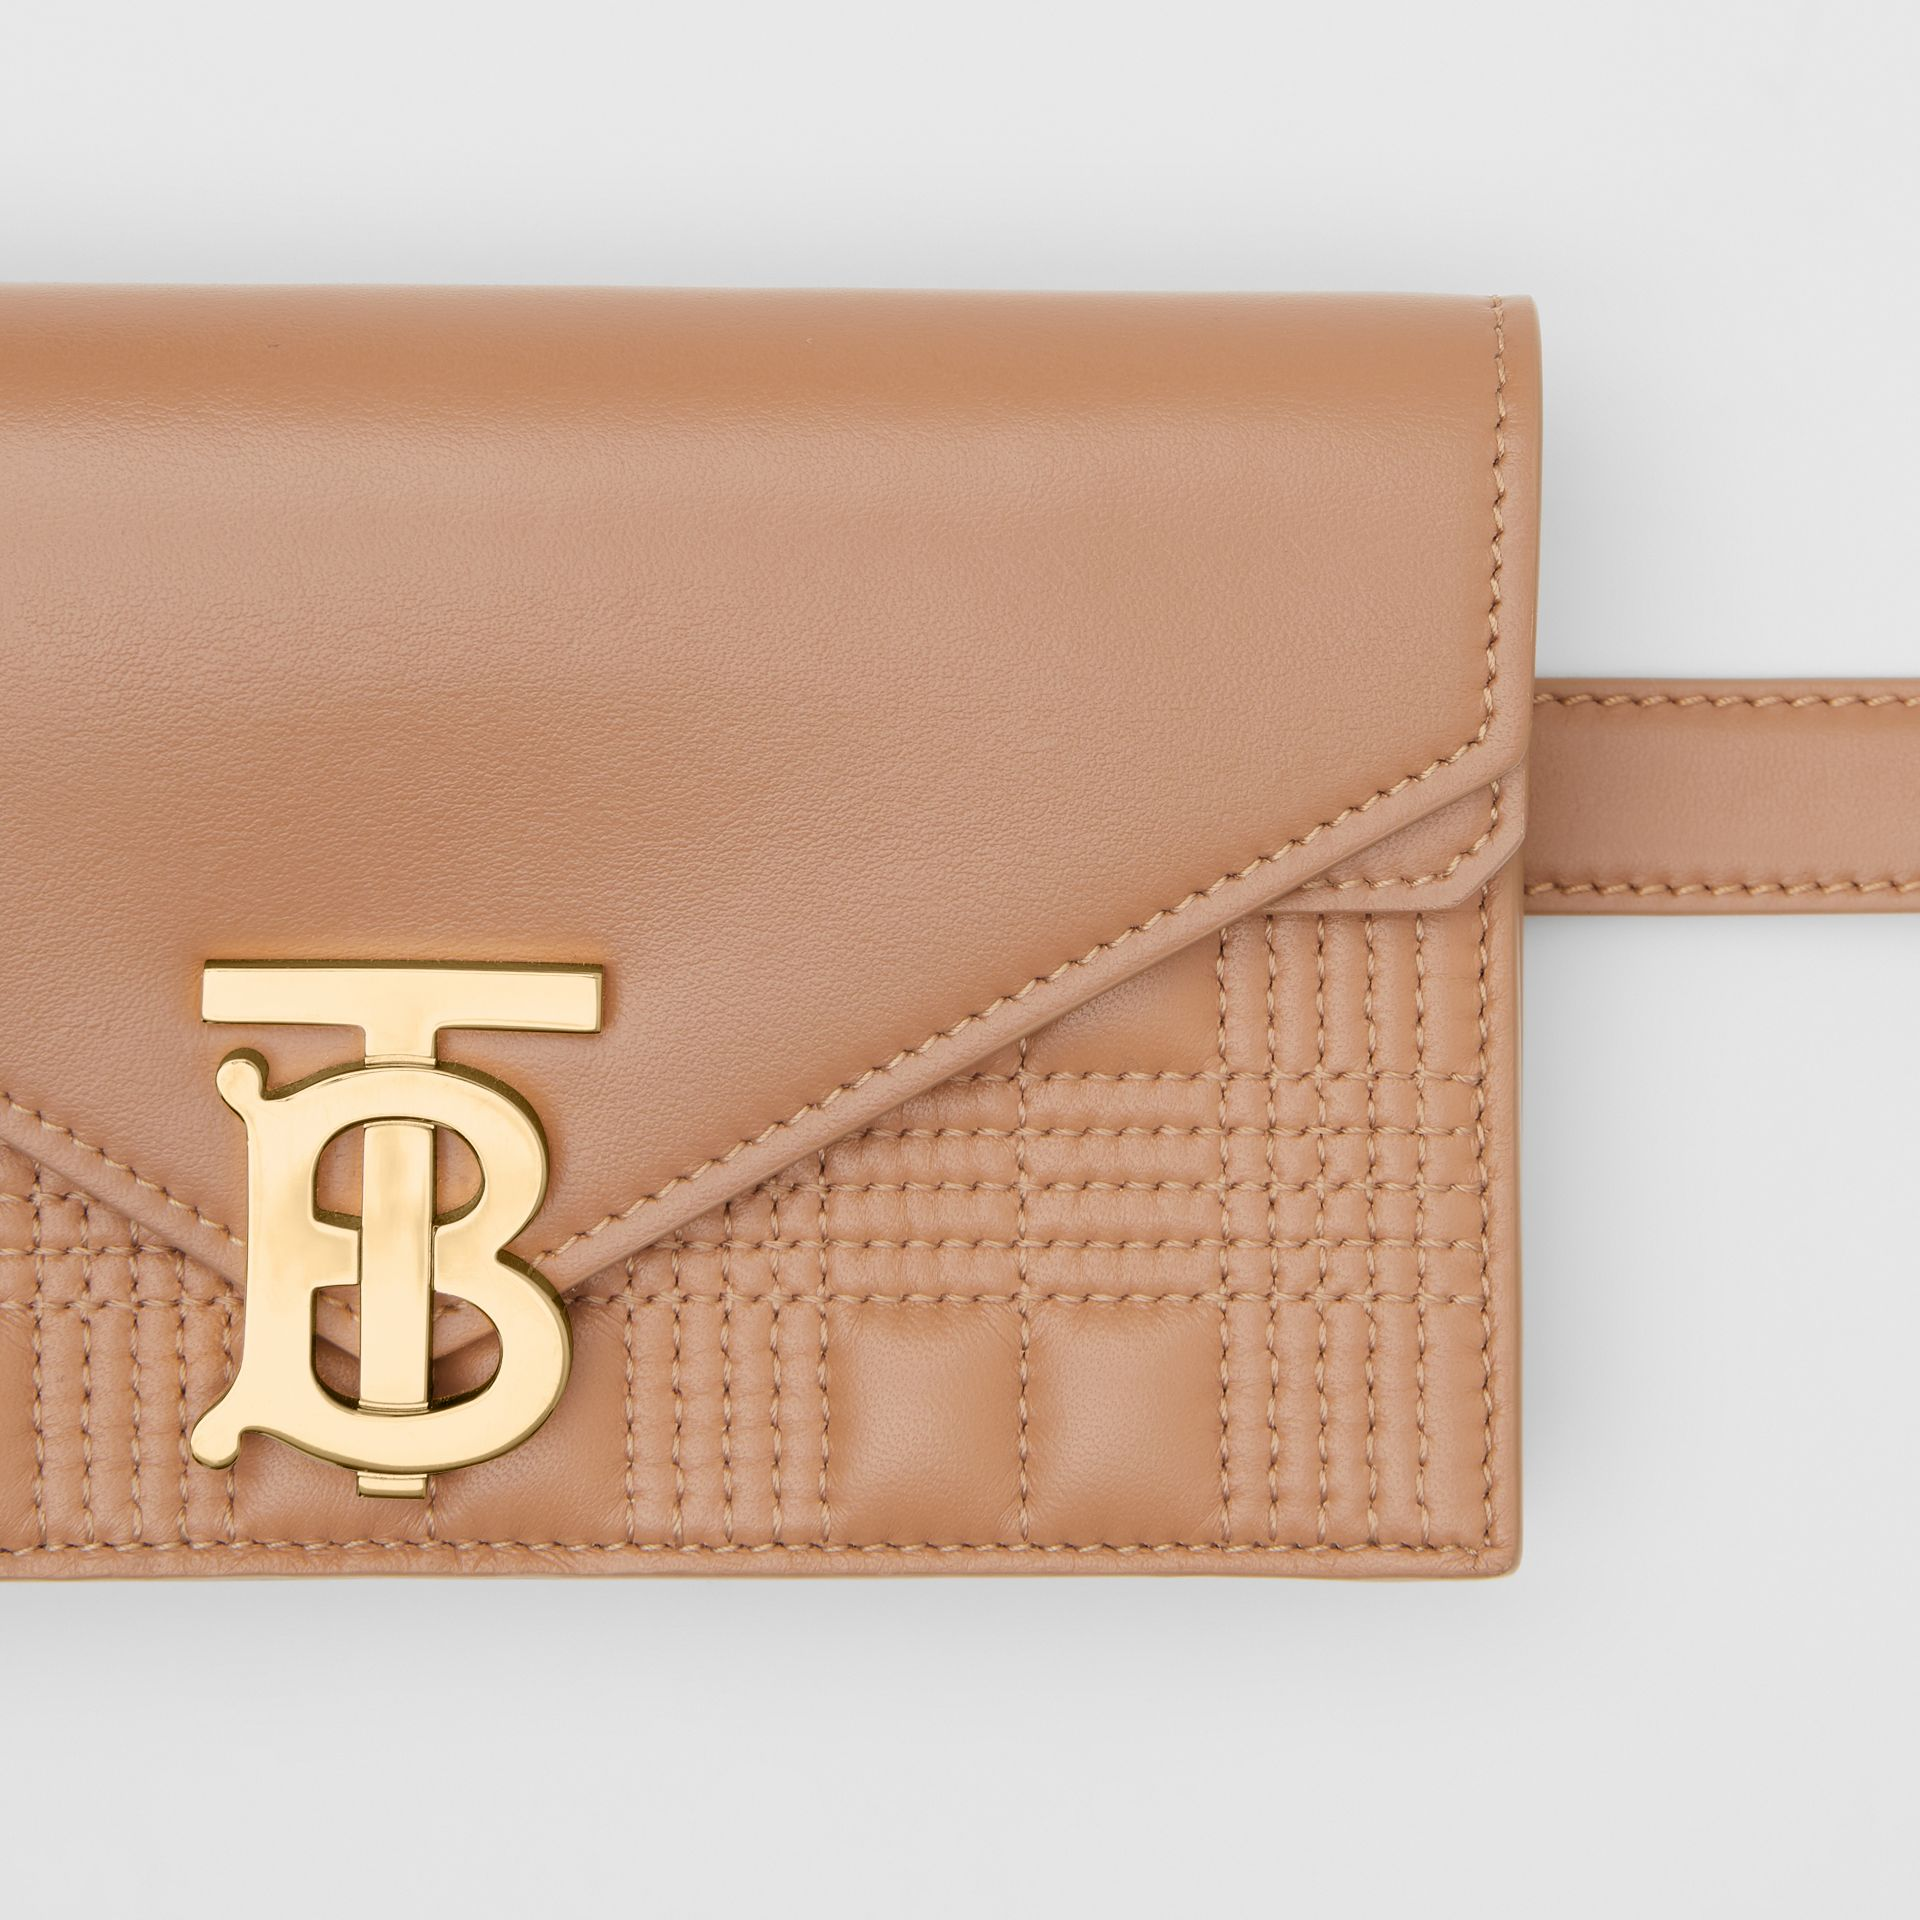 Belted Quilted Lambskin TB Envelope Clutch in Warm Camel - Women | Burberry Canada - gallery image 1